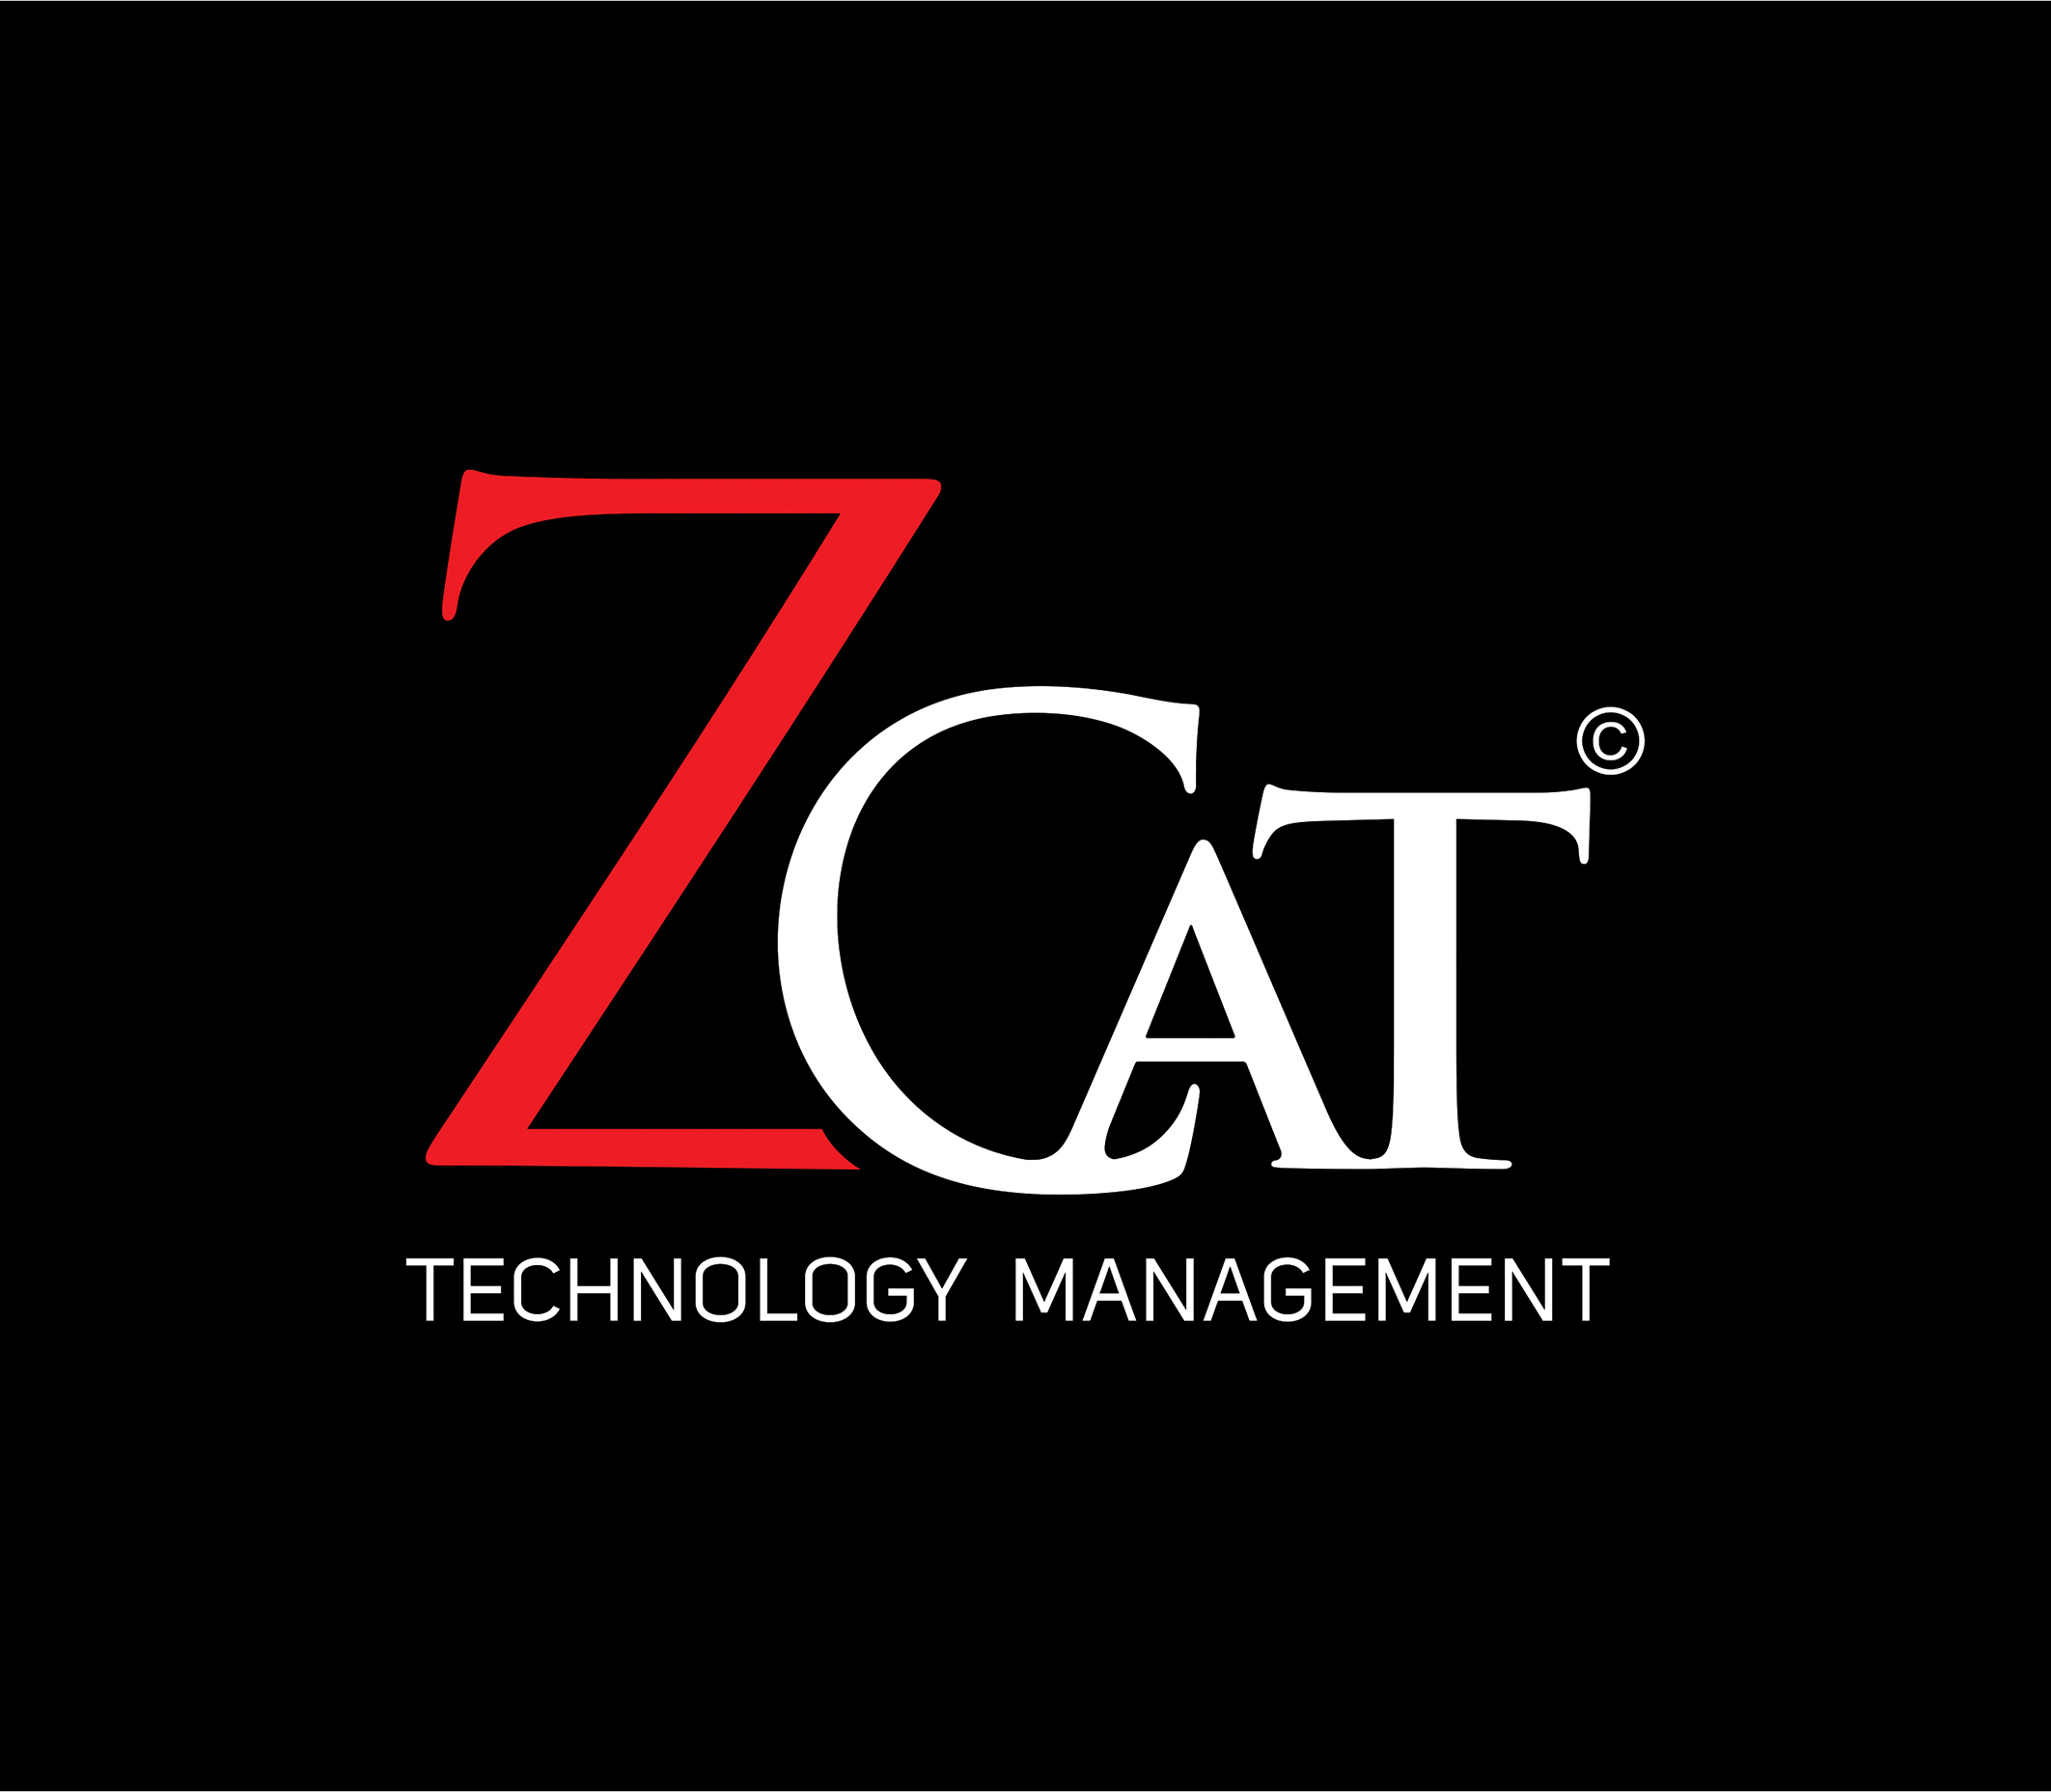 Zcat Technology Management